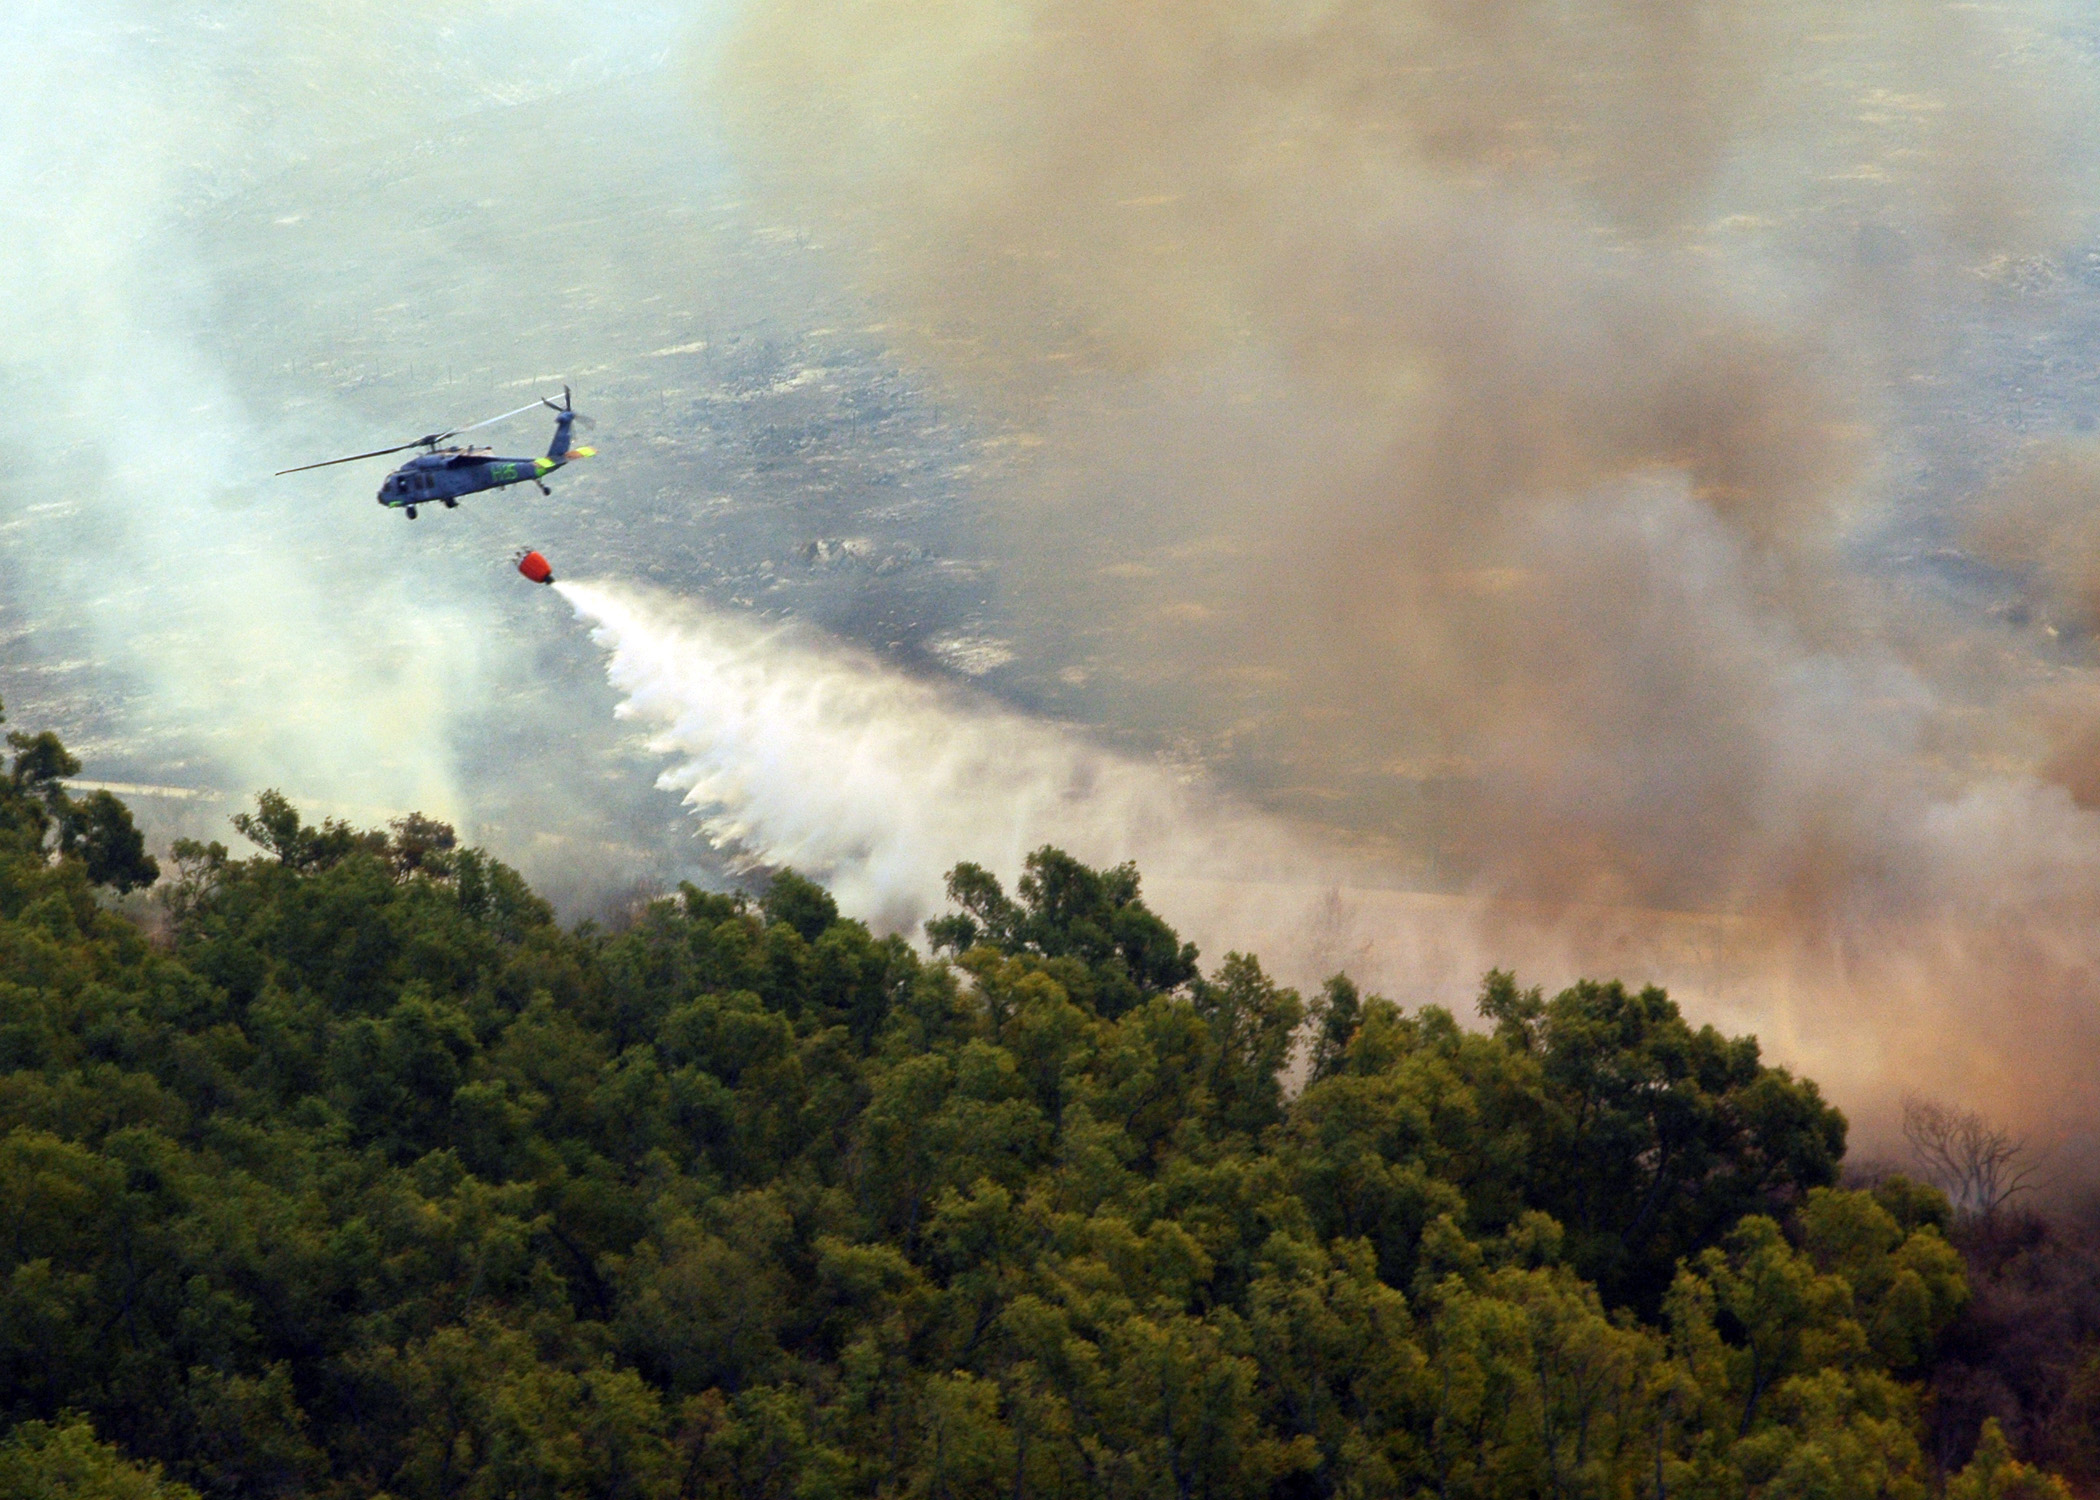 MH-60S_Helicopter_dumps_water_onto_Fire